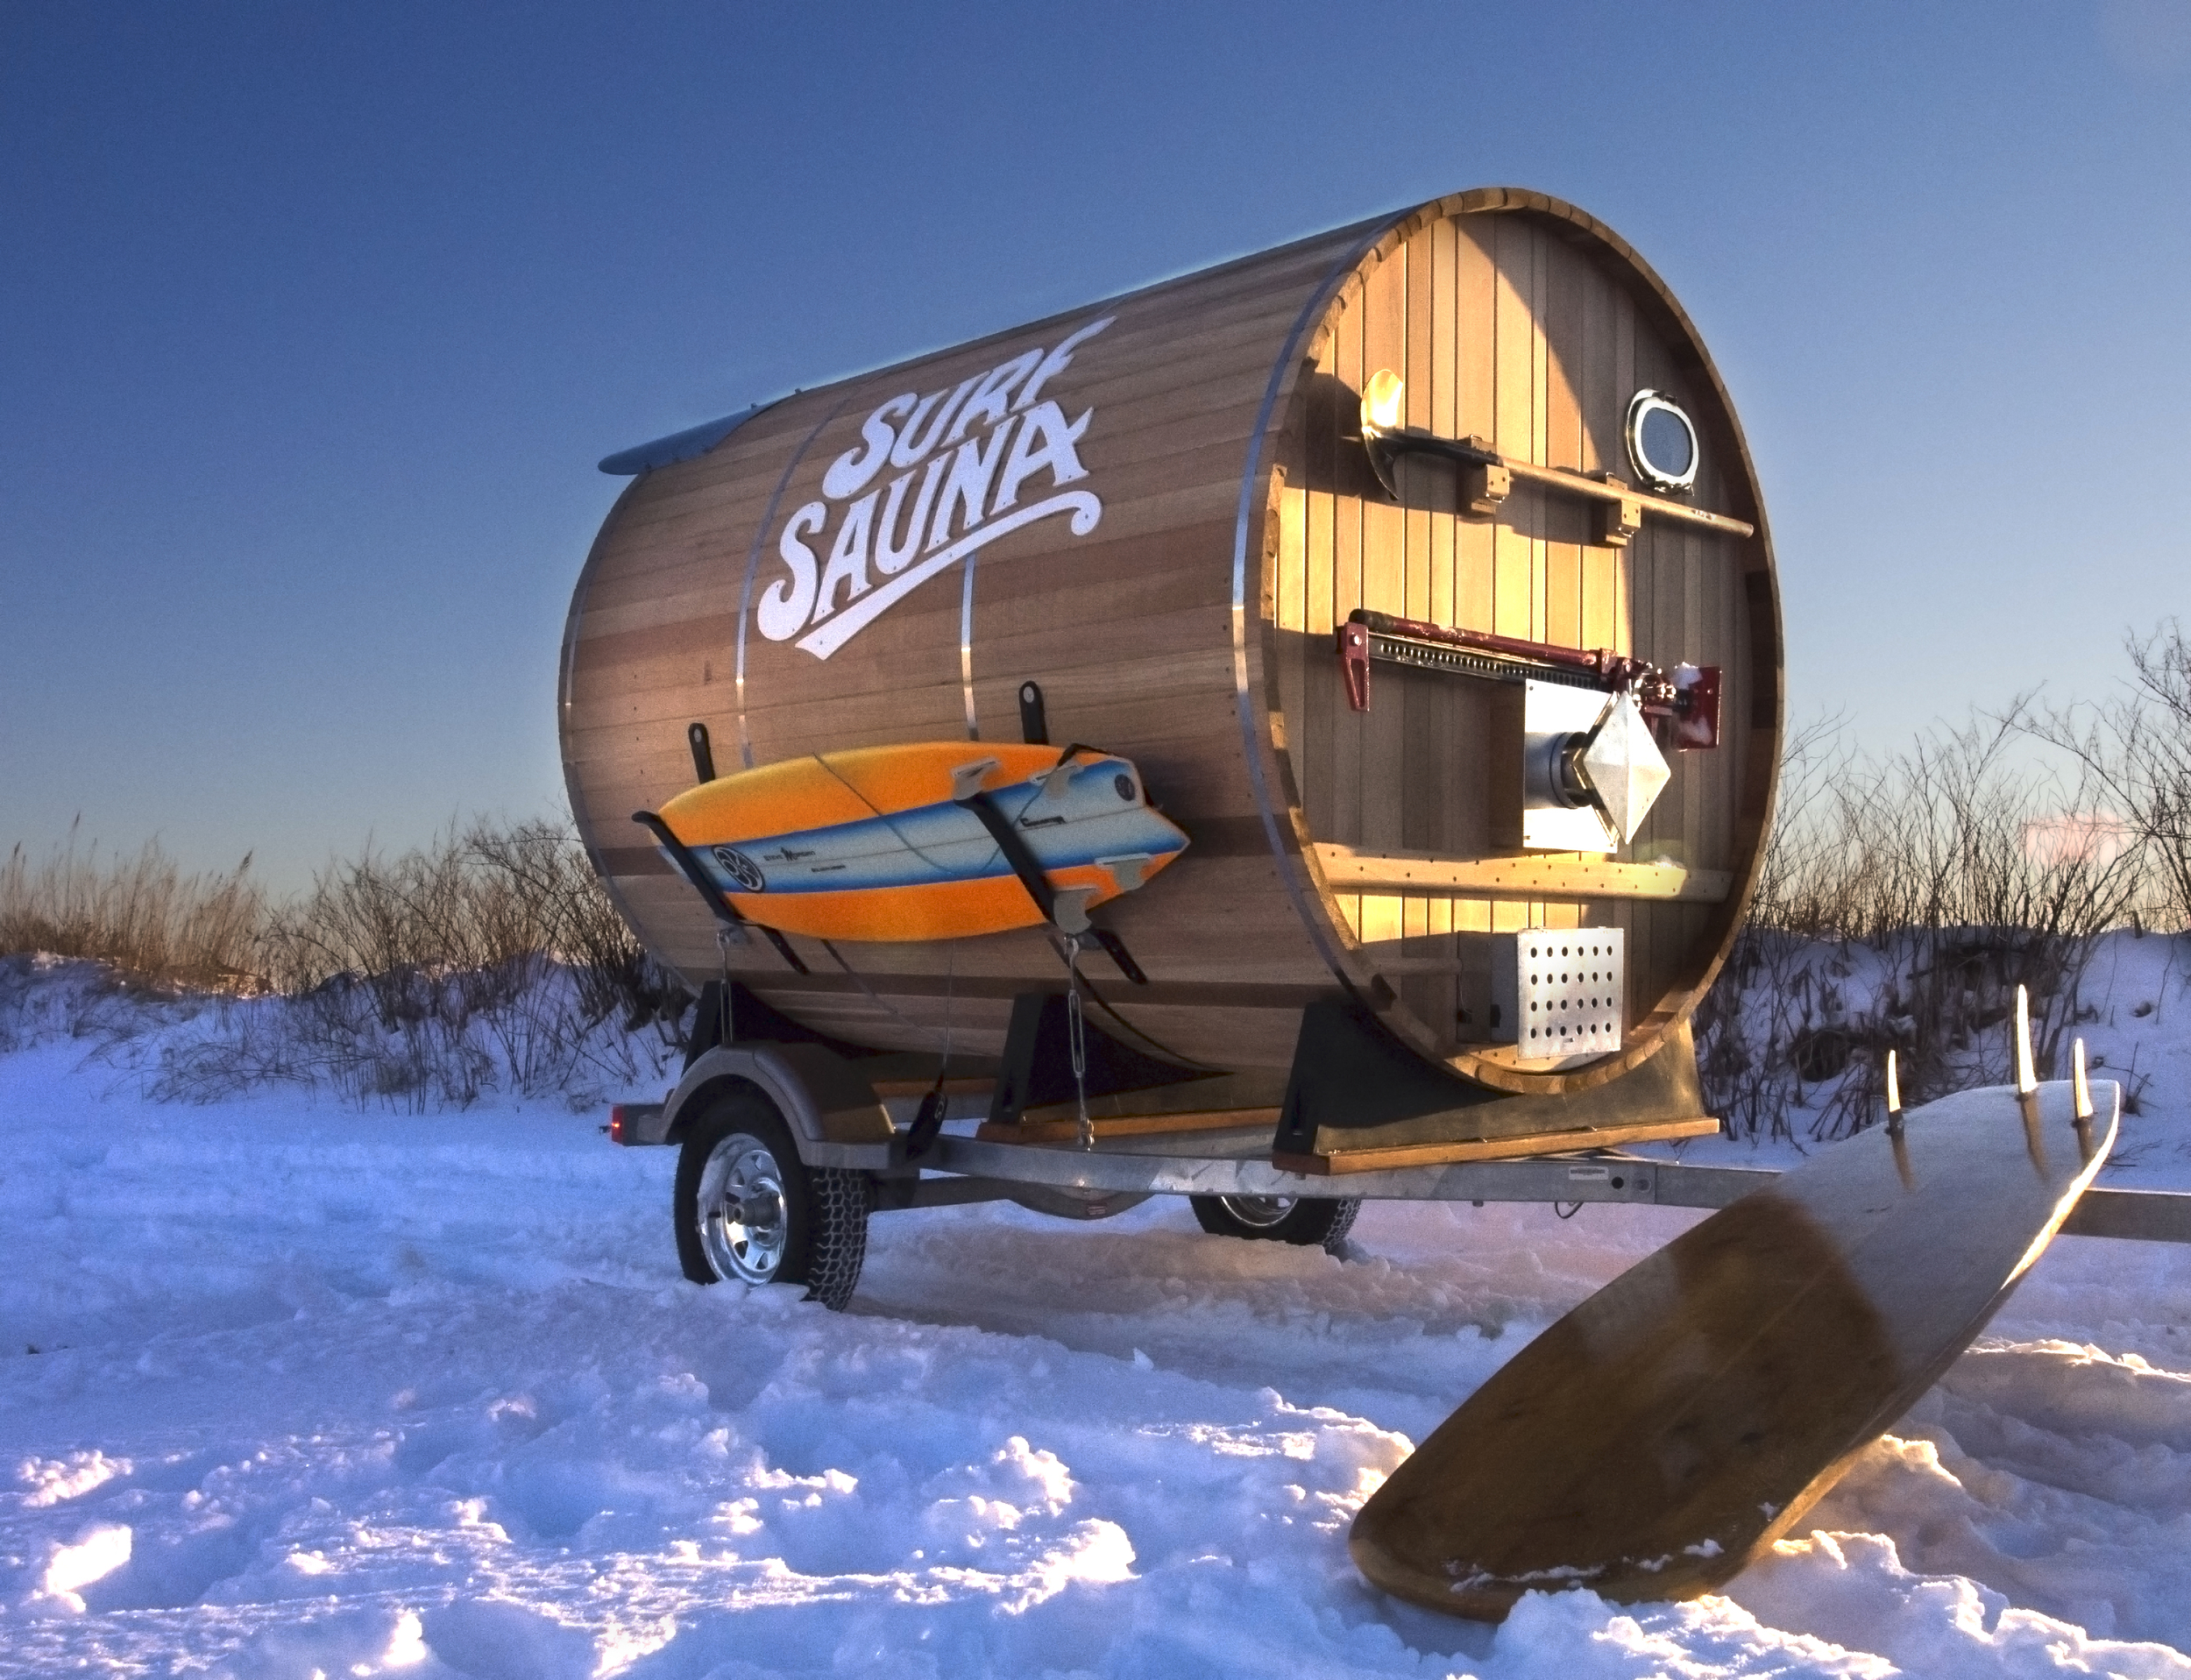 surf sauna eco design